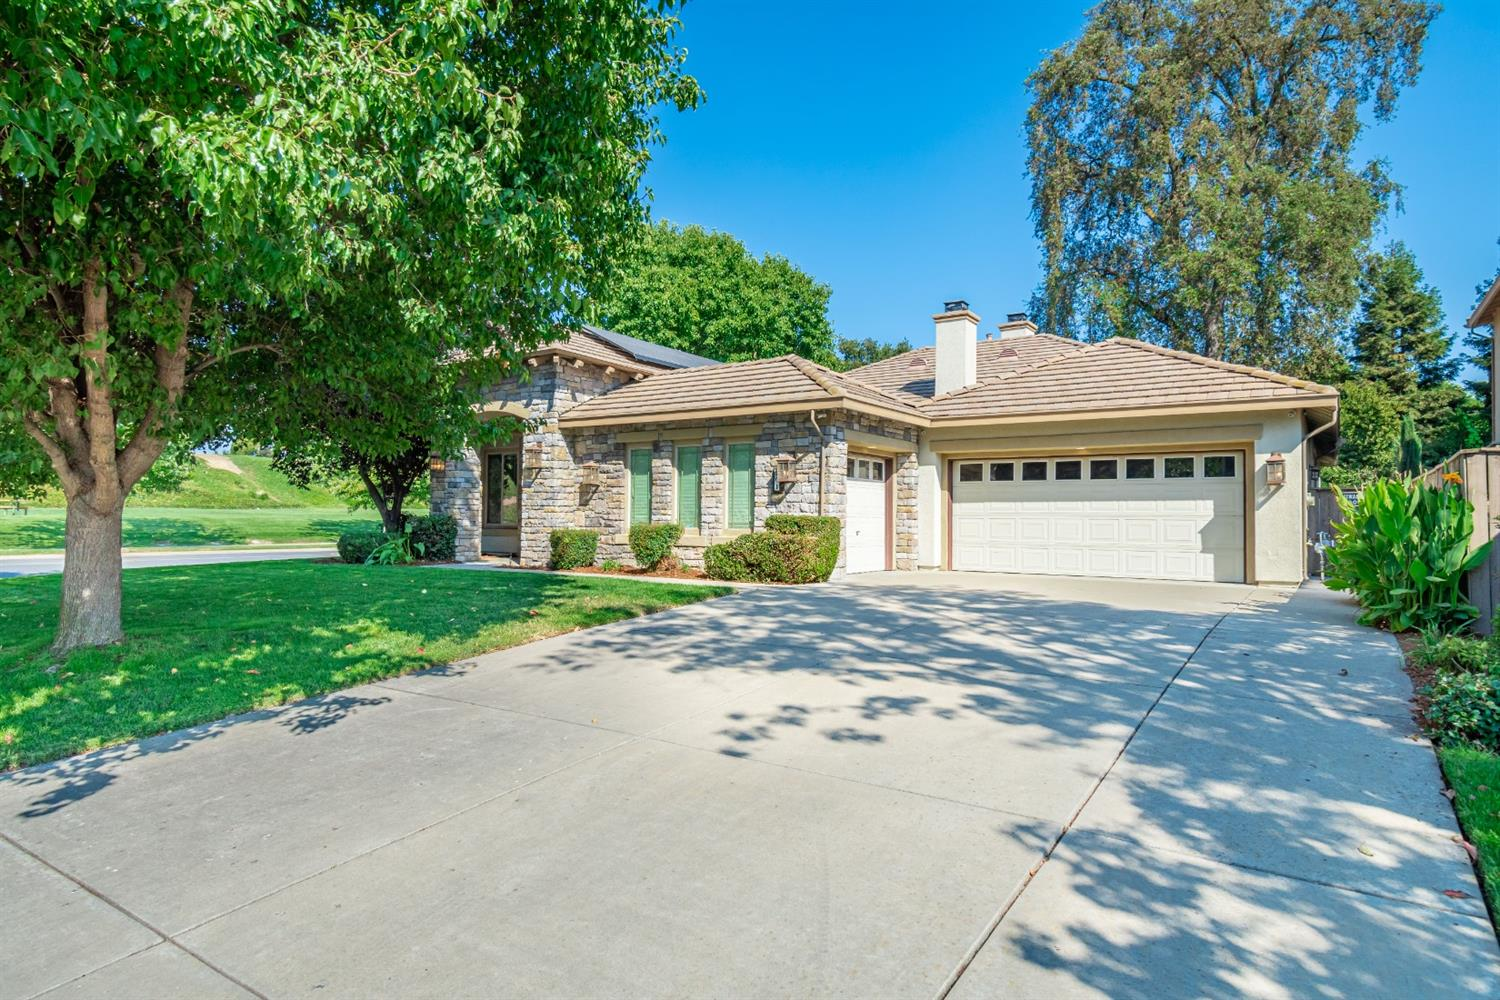 Photo of 201 Woodhaven Place, West Sacramento, CA 95605